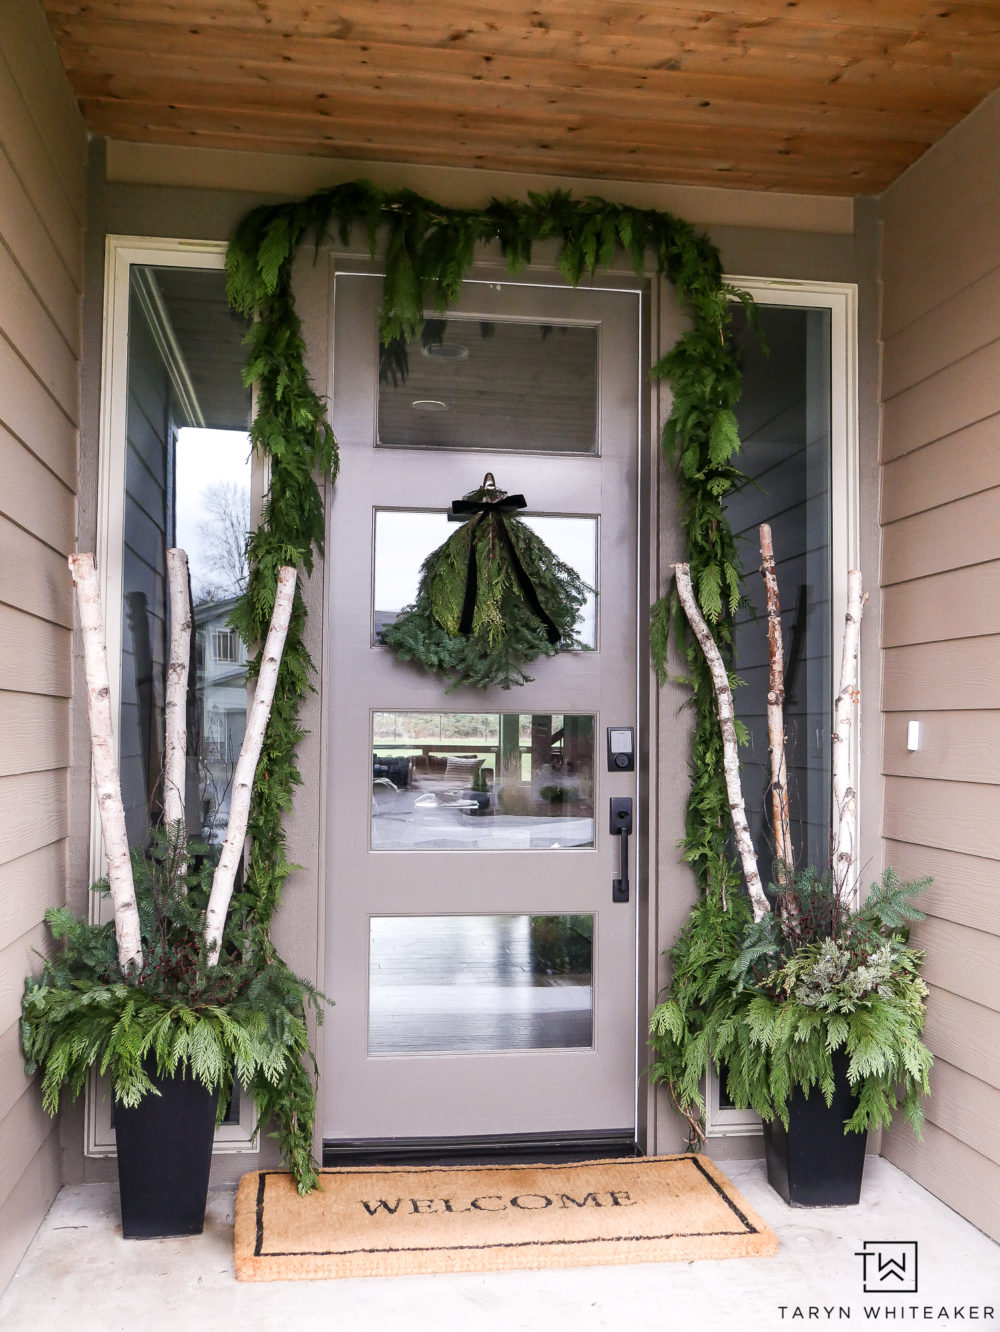 This Christmas Porch With Fresh Greens is both traditional and a little modern. Love the minimalist approach to porch decorations for the holidays.